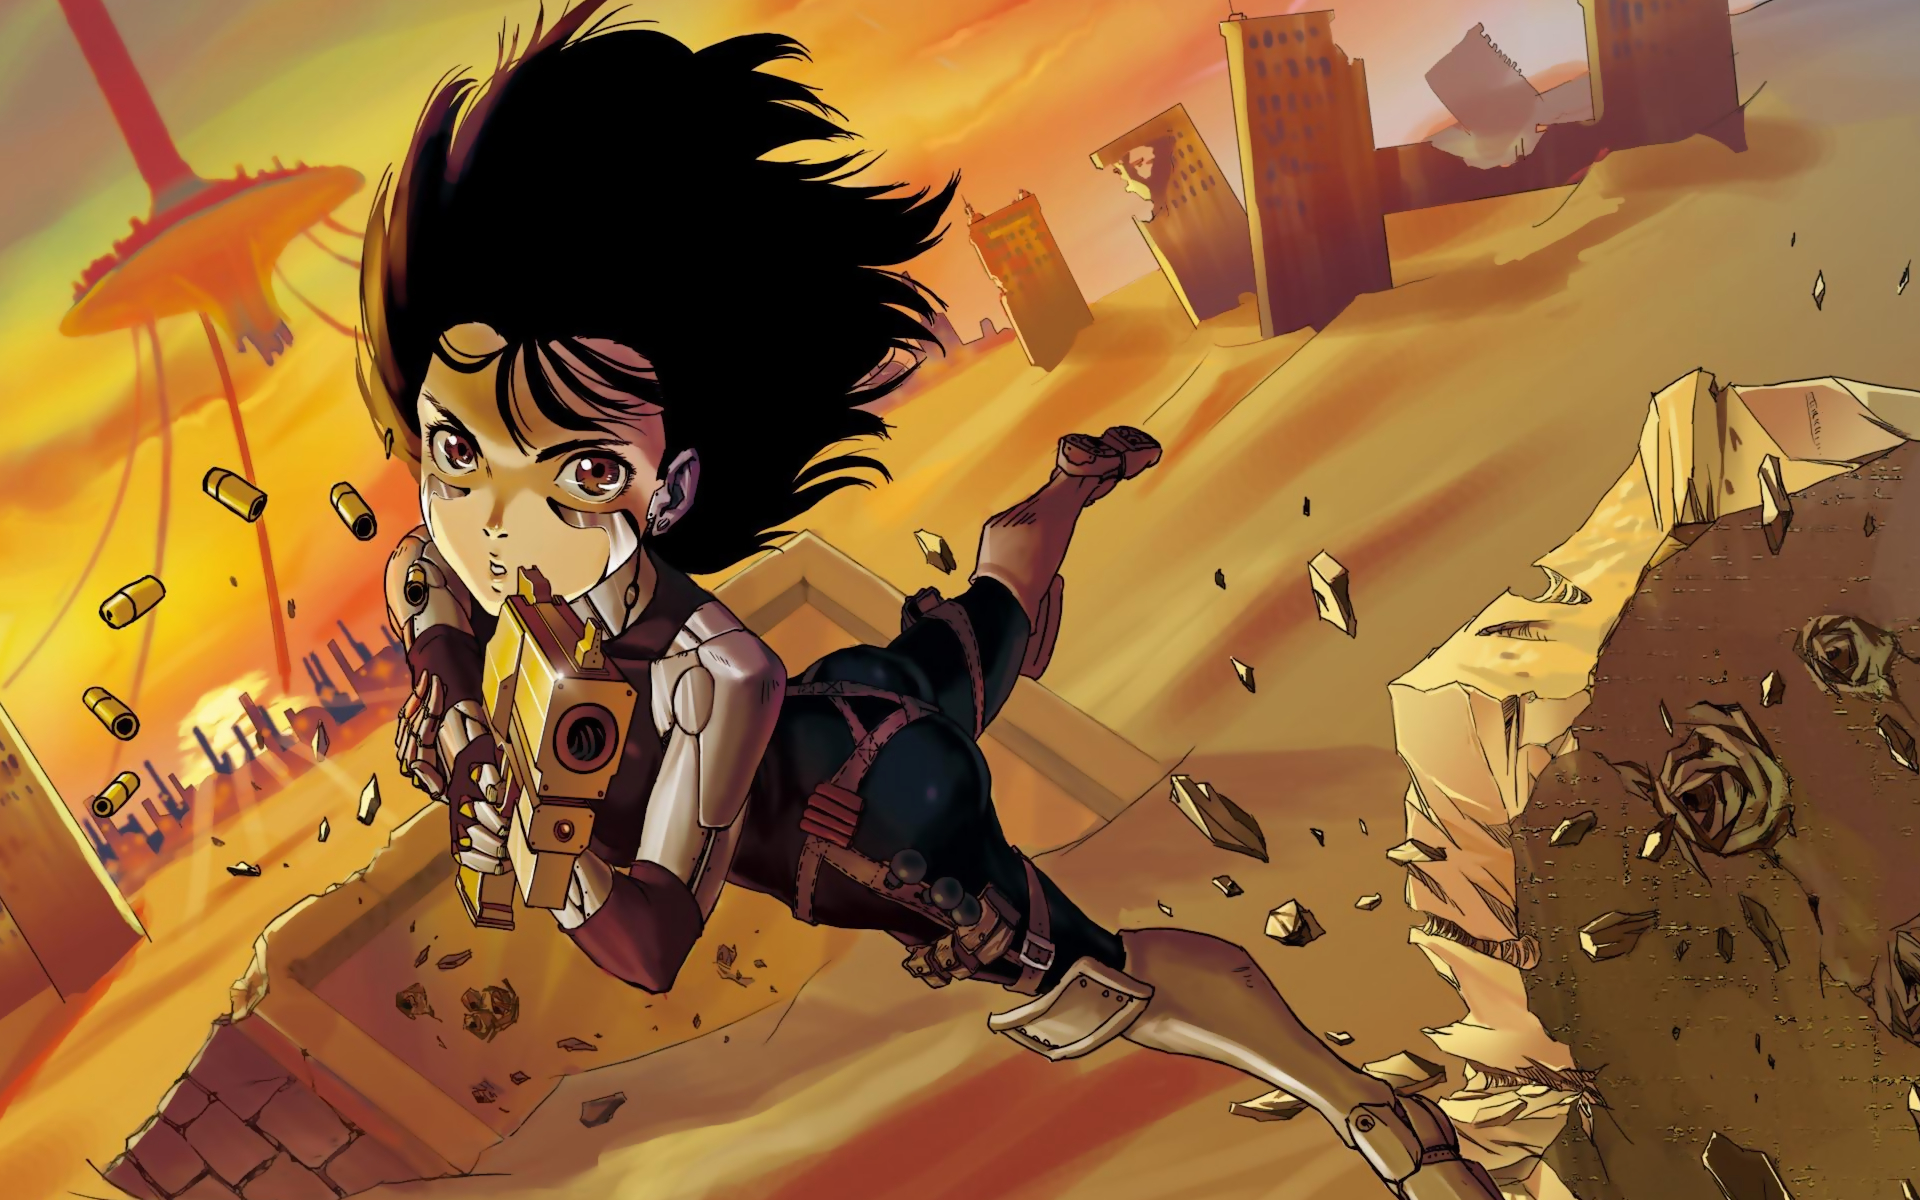 Battle Angel Alita Gunnm HD Wallpaper